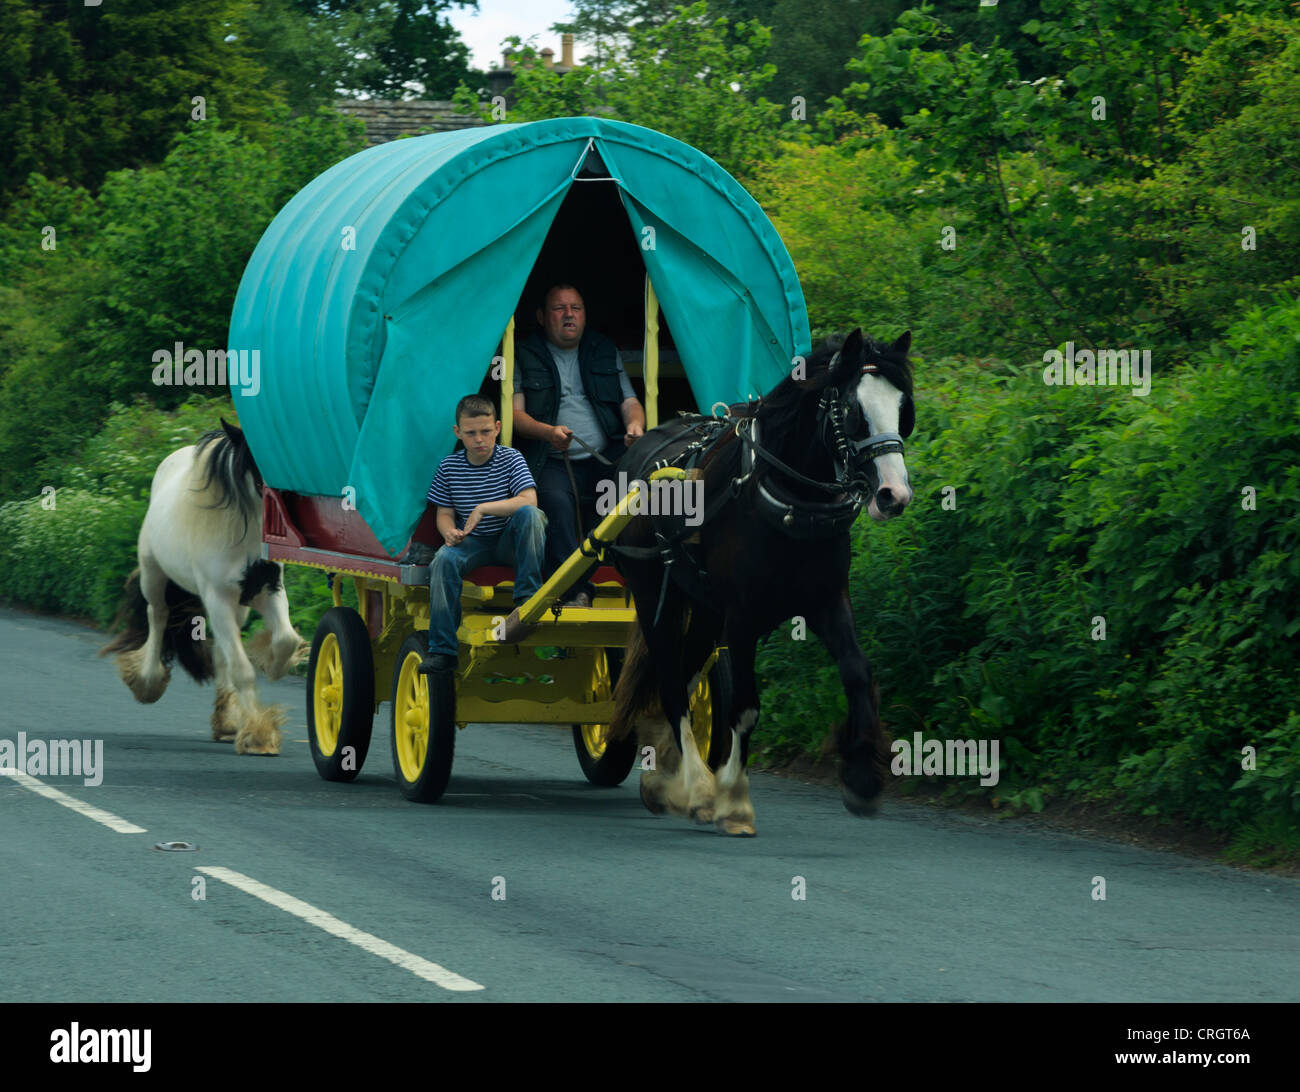 Travellers in a traditional horse drawn caravan in Sedbergh, Cumbria. - Stock Image